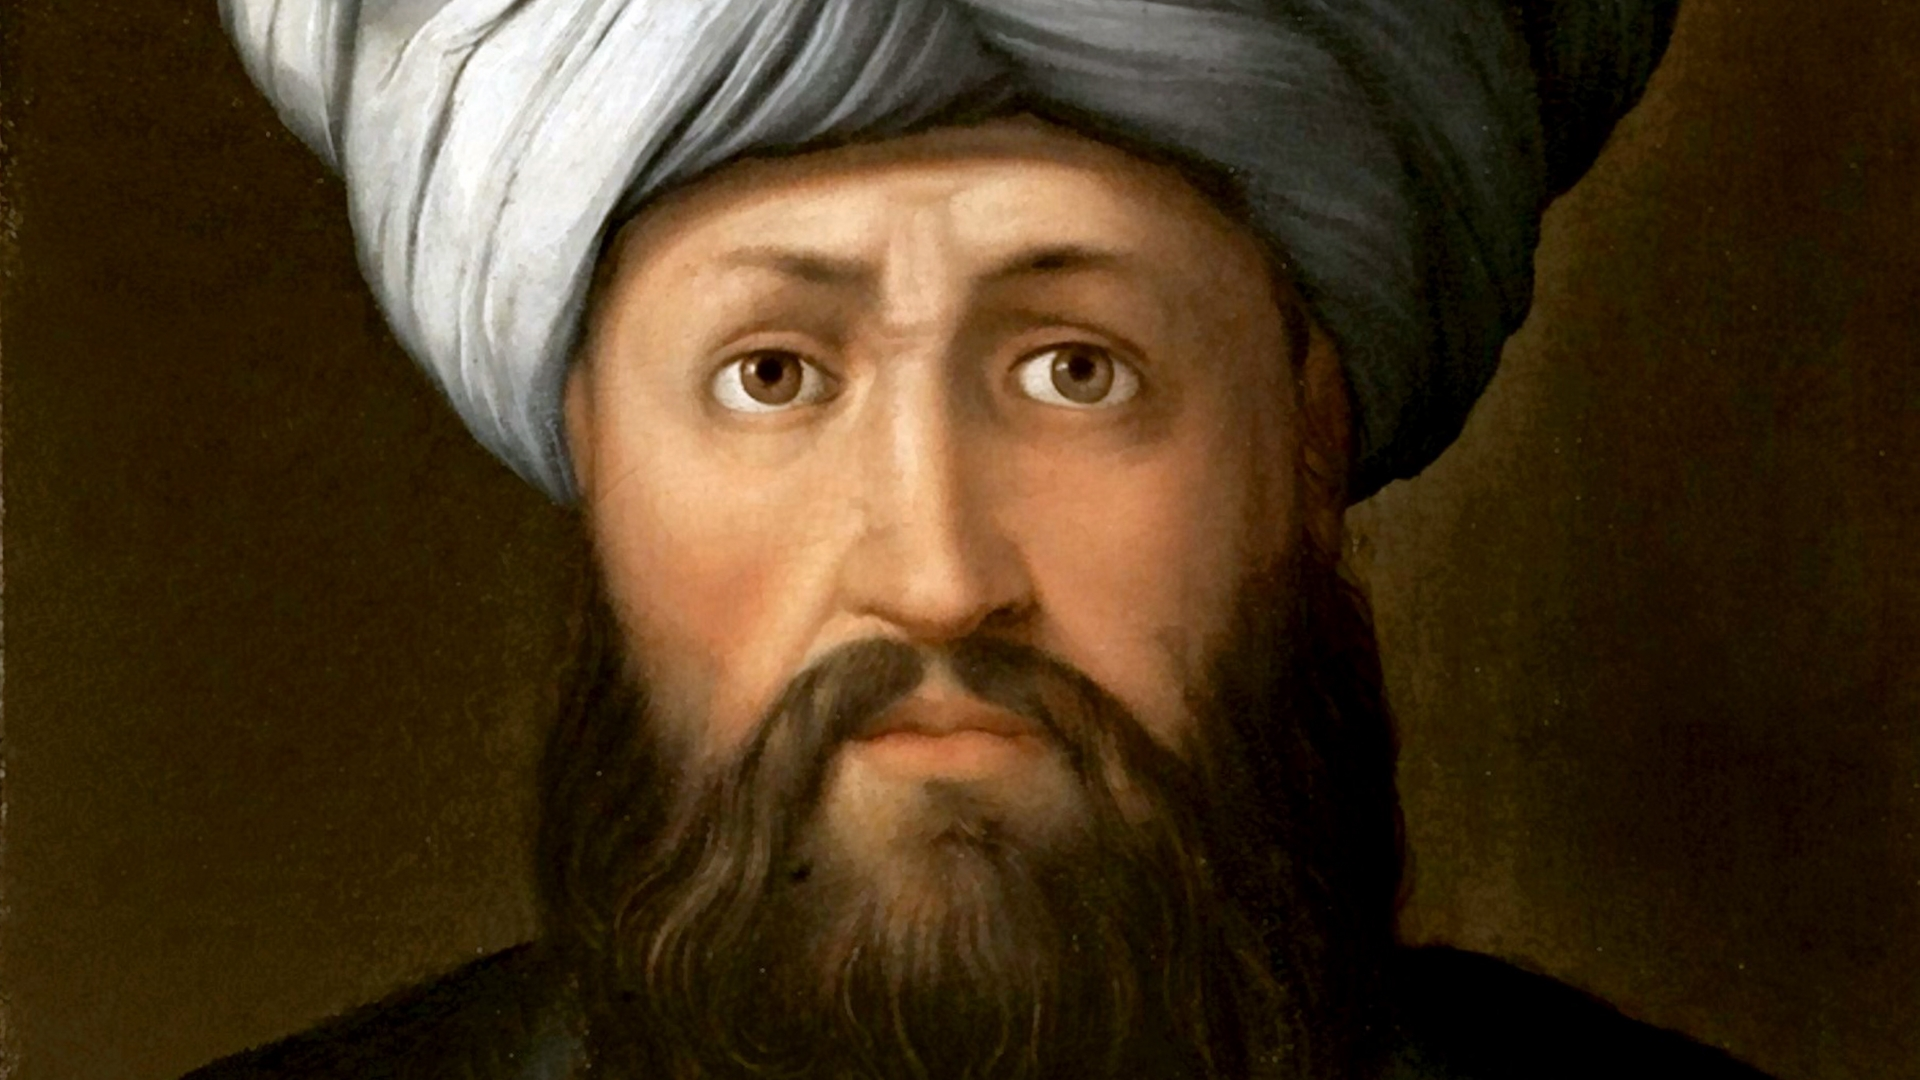 Portrait of Saladin, the first sultan of Egypt and Syria and the founder of the Ayyubid dynasty. While Saladin led Muslim opposition to the western Crusaders, he also befriended some, like King Baldwin III of Jerusalem.  (Credit: Universal History Archive/UIG via Getty Images)